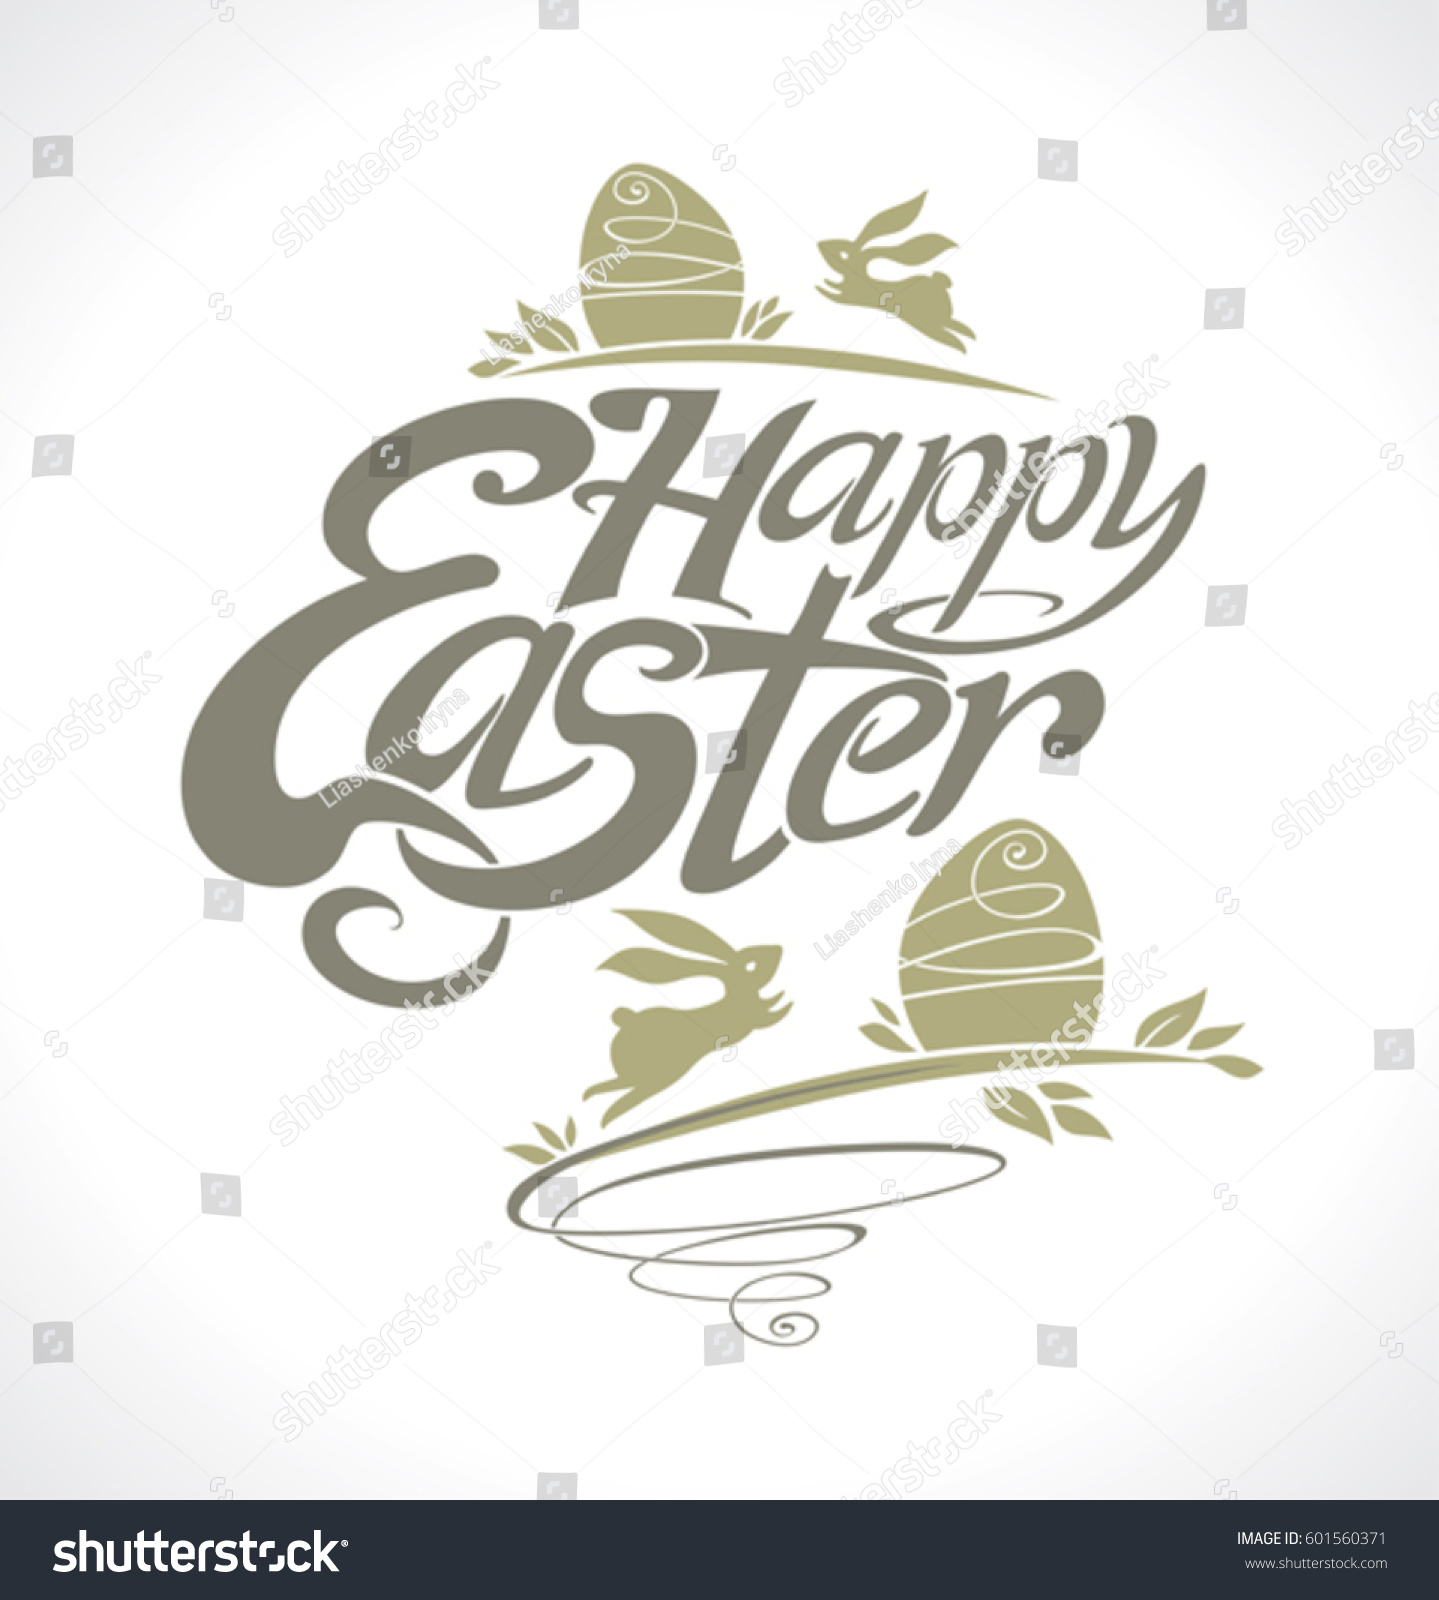 Happy easter lettering template holiday easter stock vector happy easter lettering template for holiday easter bunnies and gift eggs beautiful vector label negle Image collections